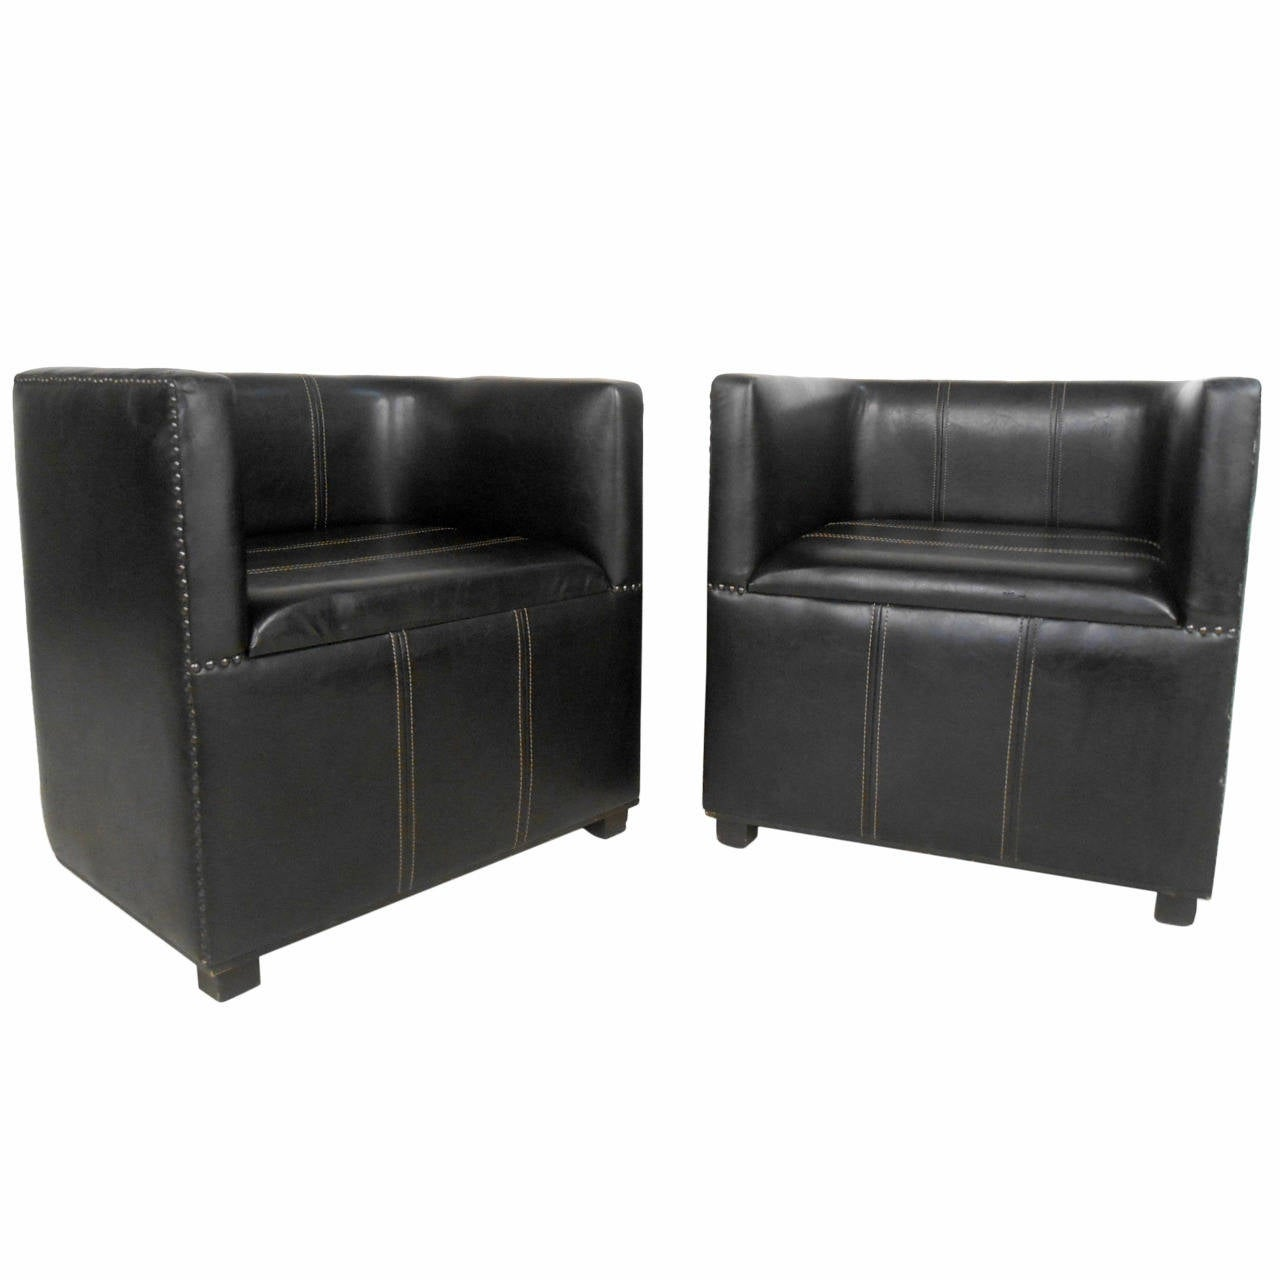 597e36e7188c4 Pair of Mid-Century Modern Style Miniature Leather Club Chairs For Sale